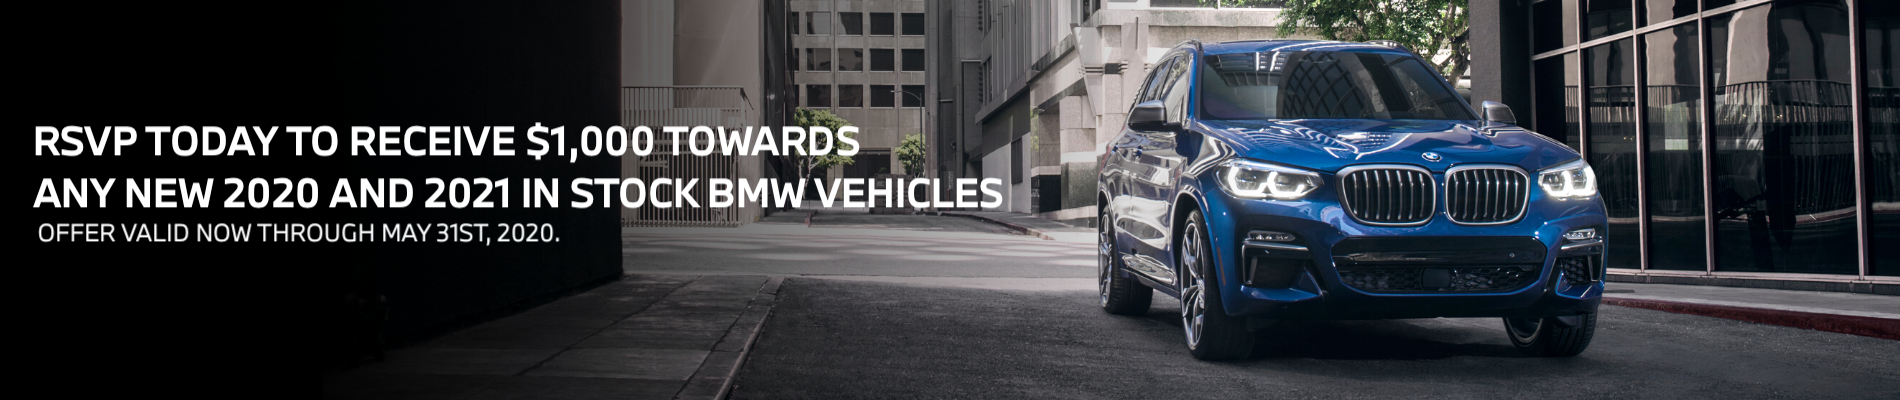 EAST BAY BMW MEMORIAL DAY SALES EVENT 2020